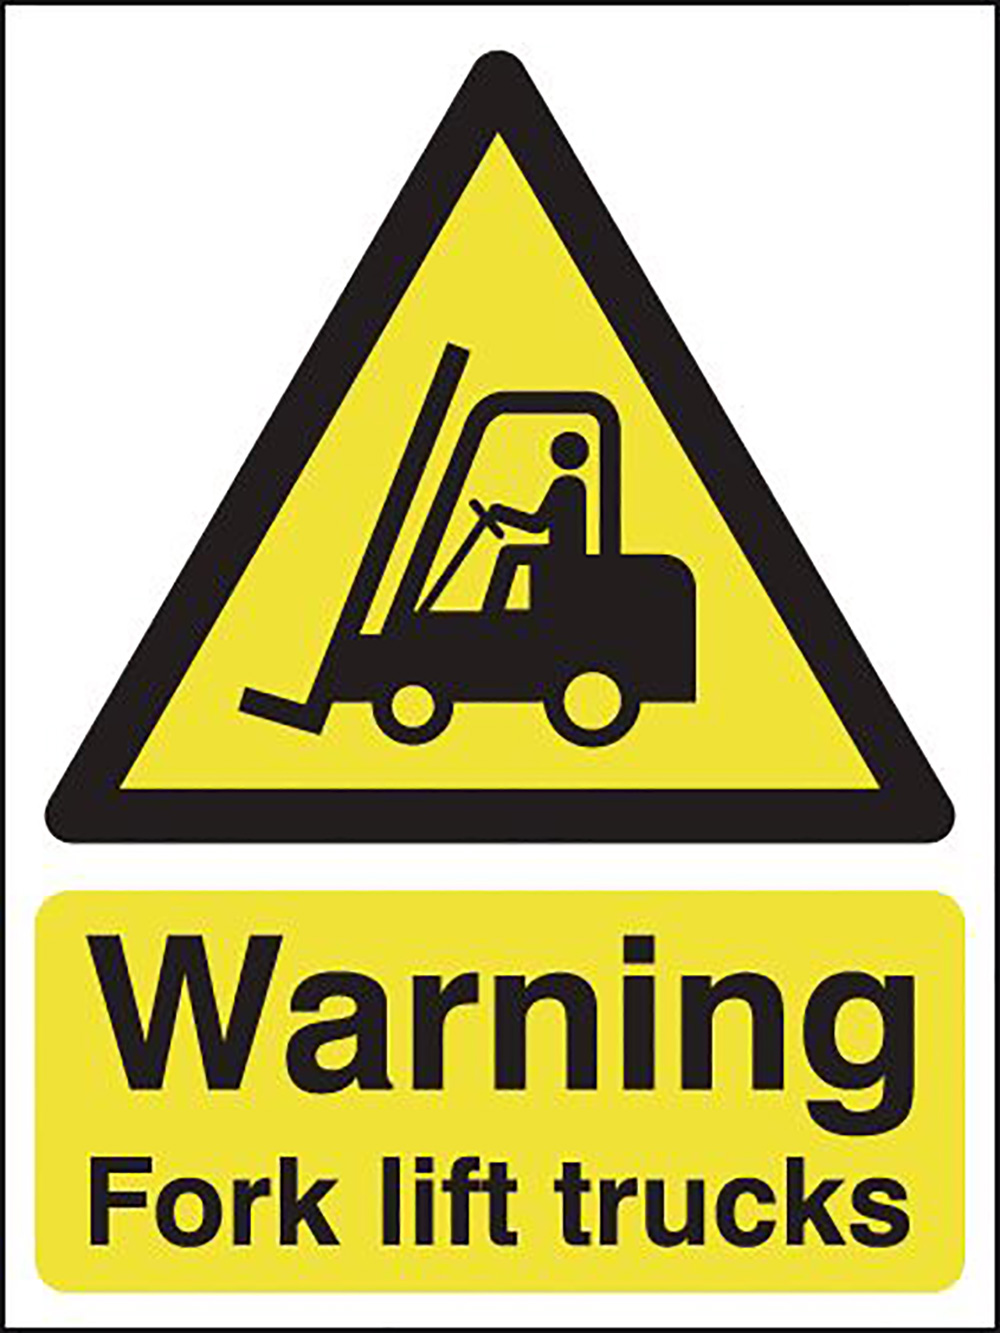 Warning Forklift Trucks  210x148mm Self Adhesive Vinyl Safety Sign Pack of 6